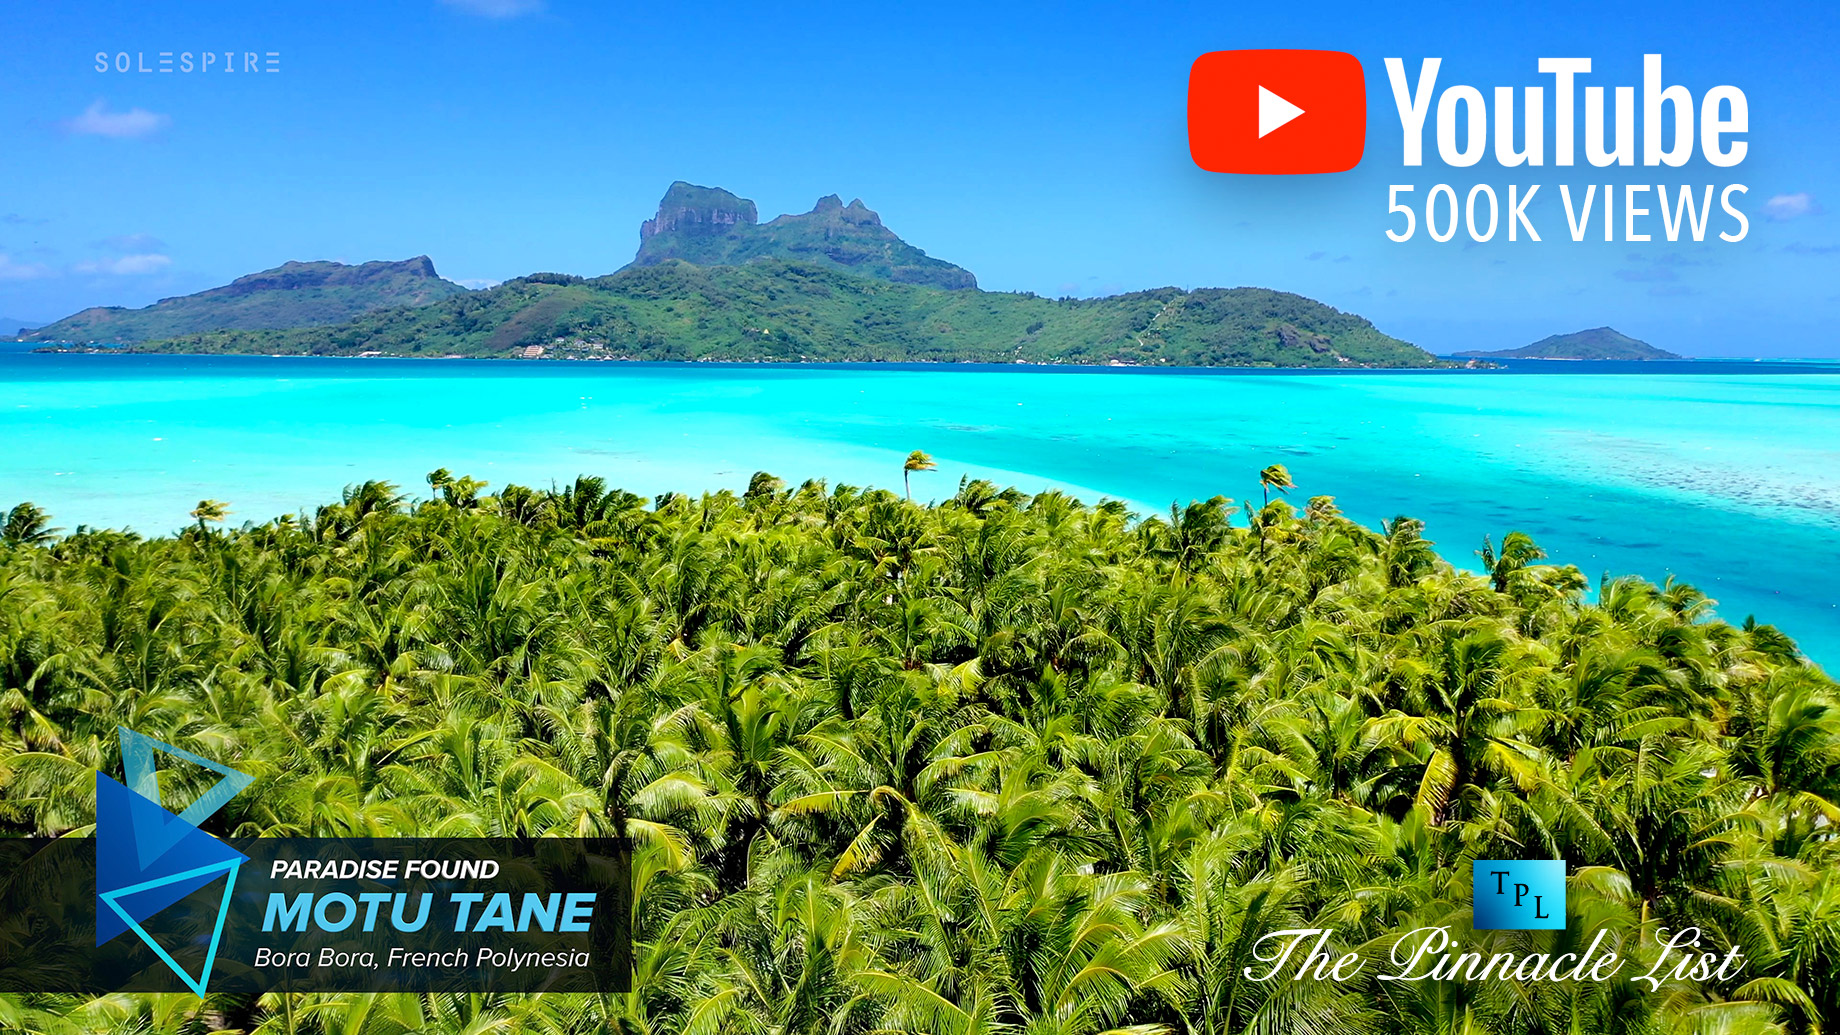 Motu Tane Video Reaches 500K Views on The Pinnacle List YouTube Channel